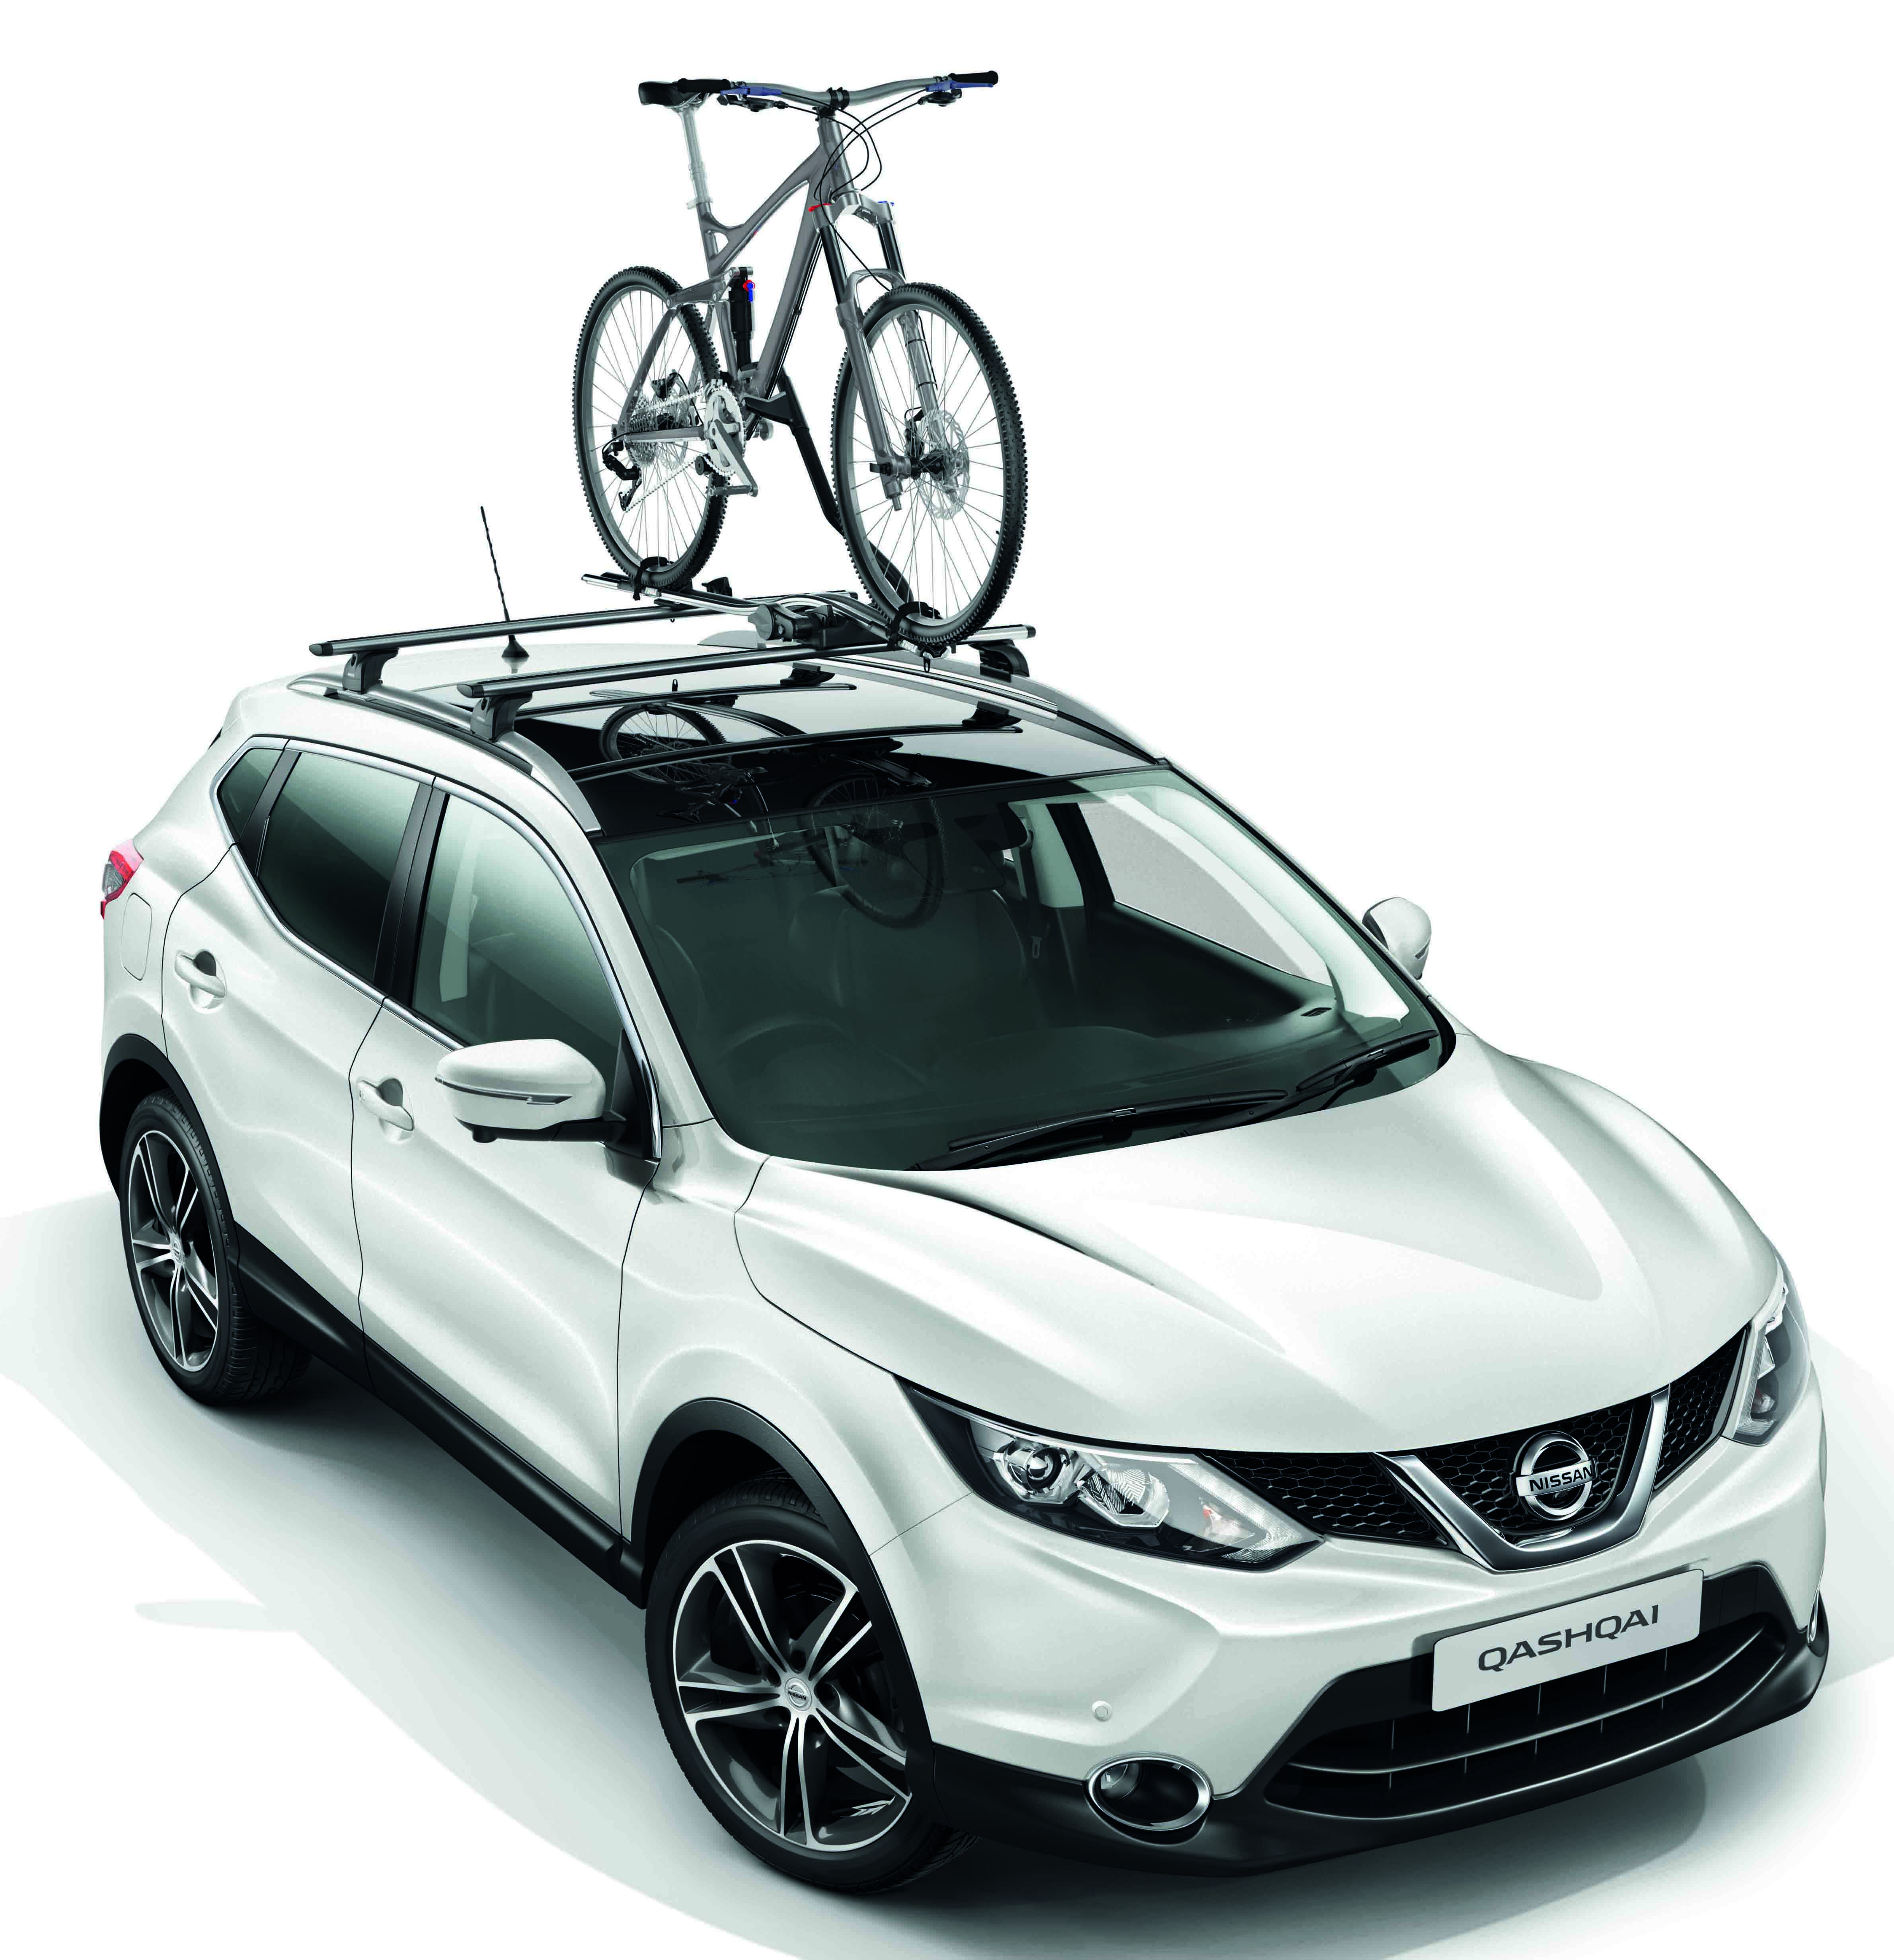 Bicycle Carrier Pro Ride 591 Thule Tullamore Nissan